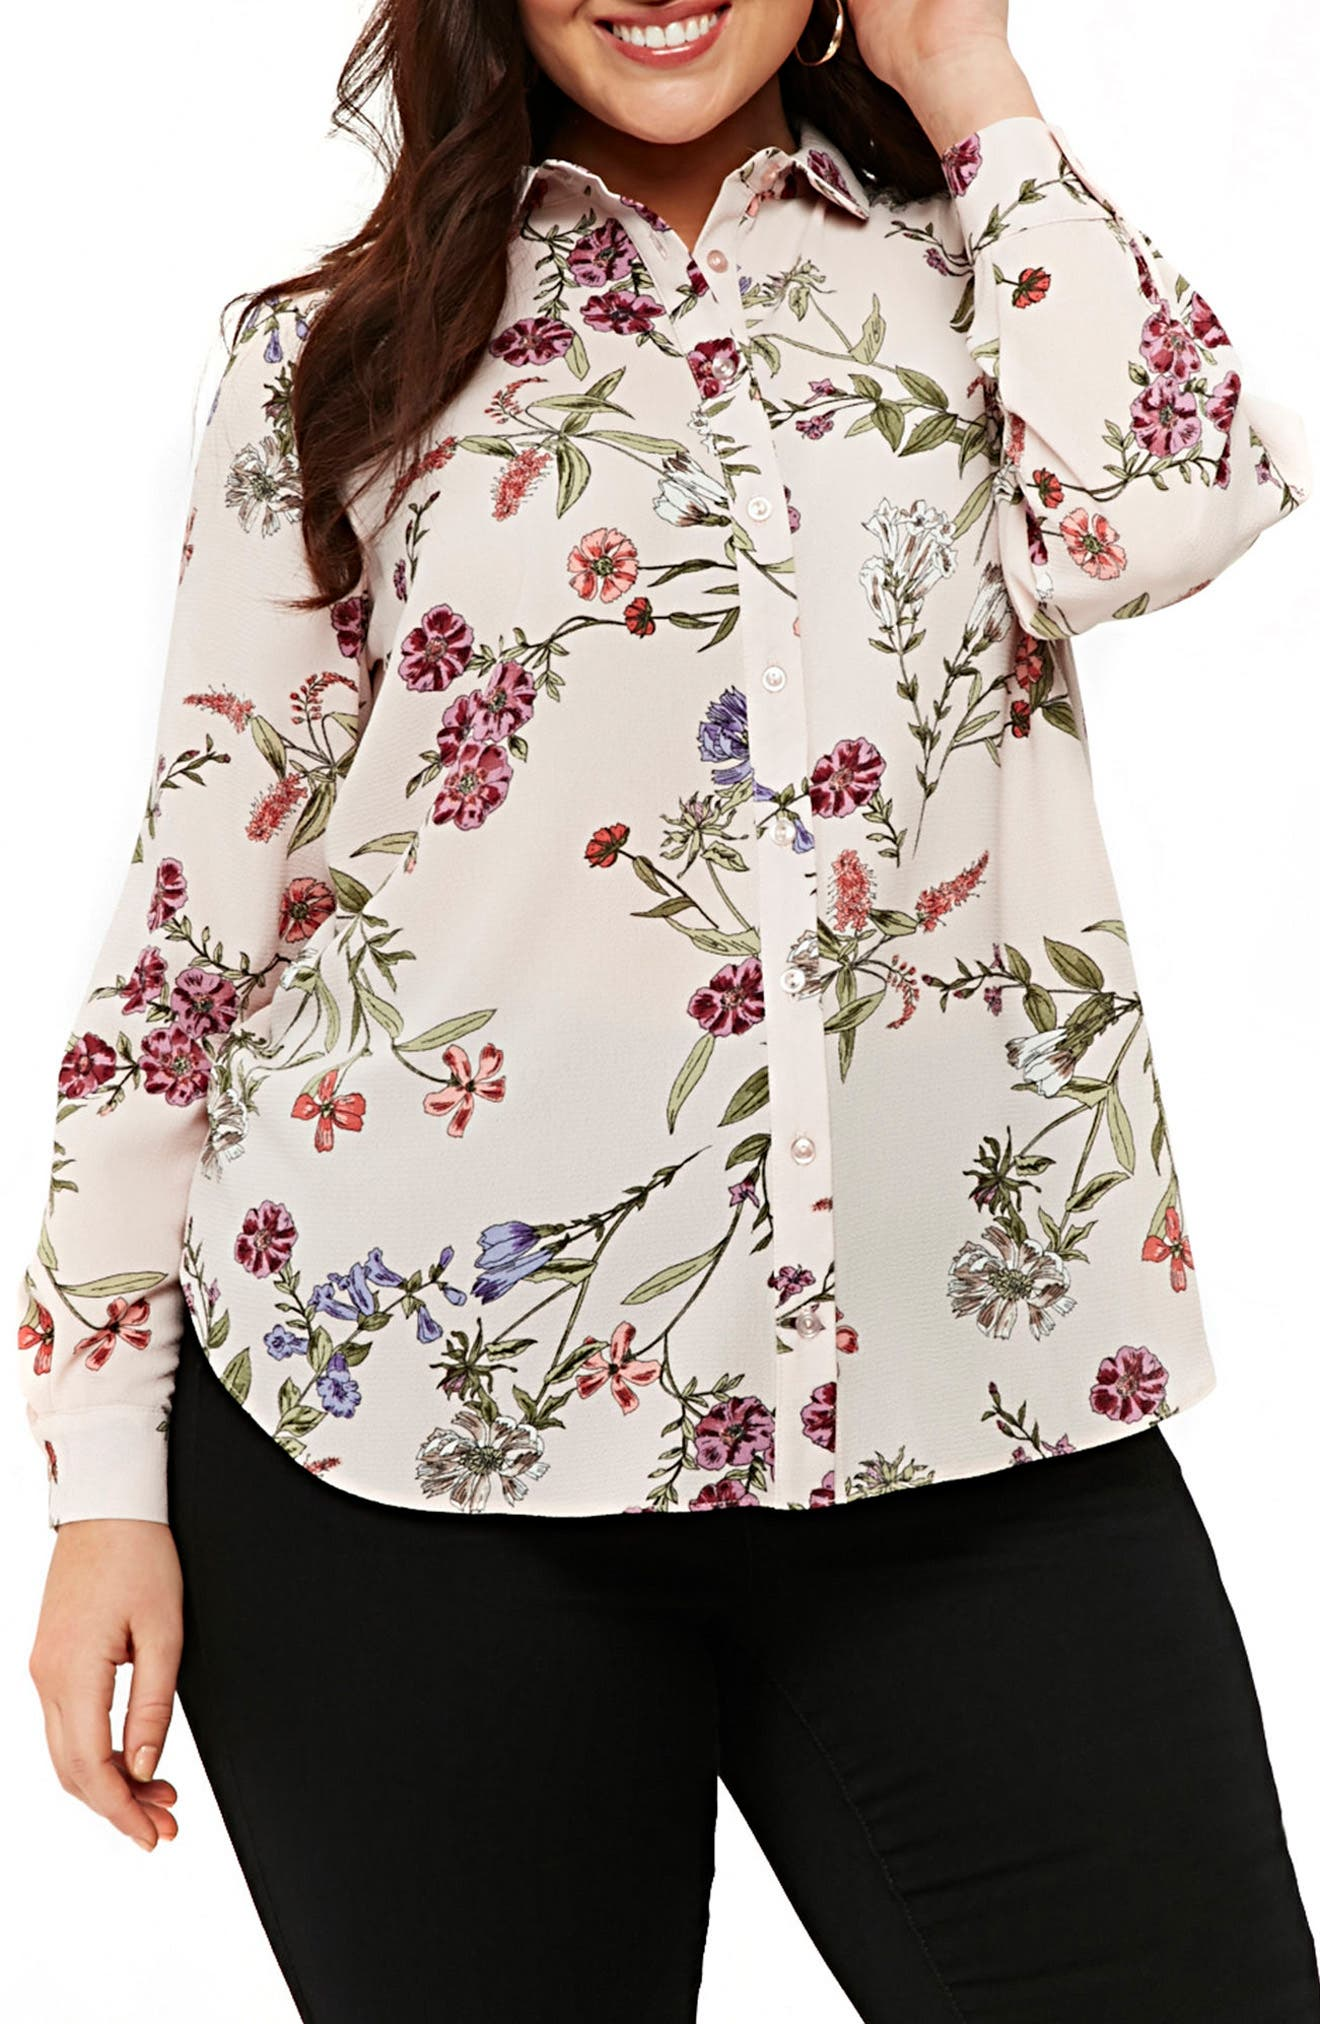 Outlet Countdown Package Clearance Marketable Evans Blush Floral Shirt Outlet For Nice 2018 Unisex uVtKtM